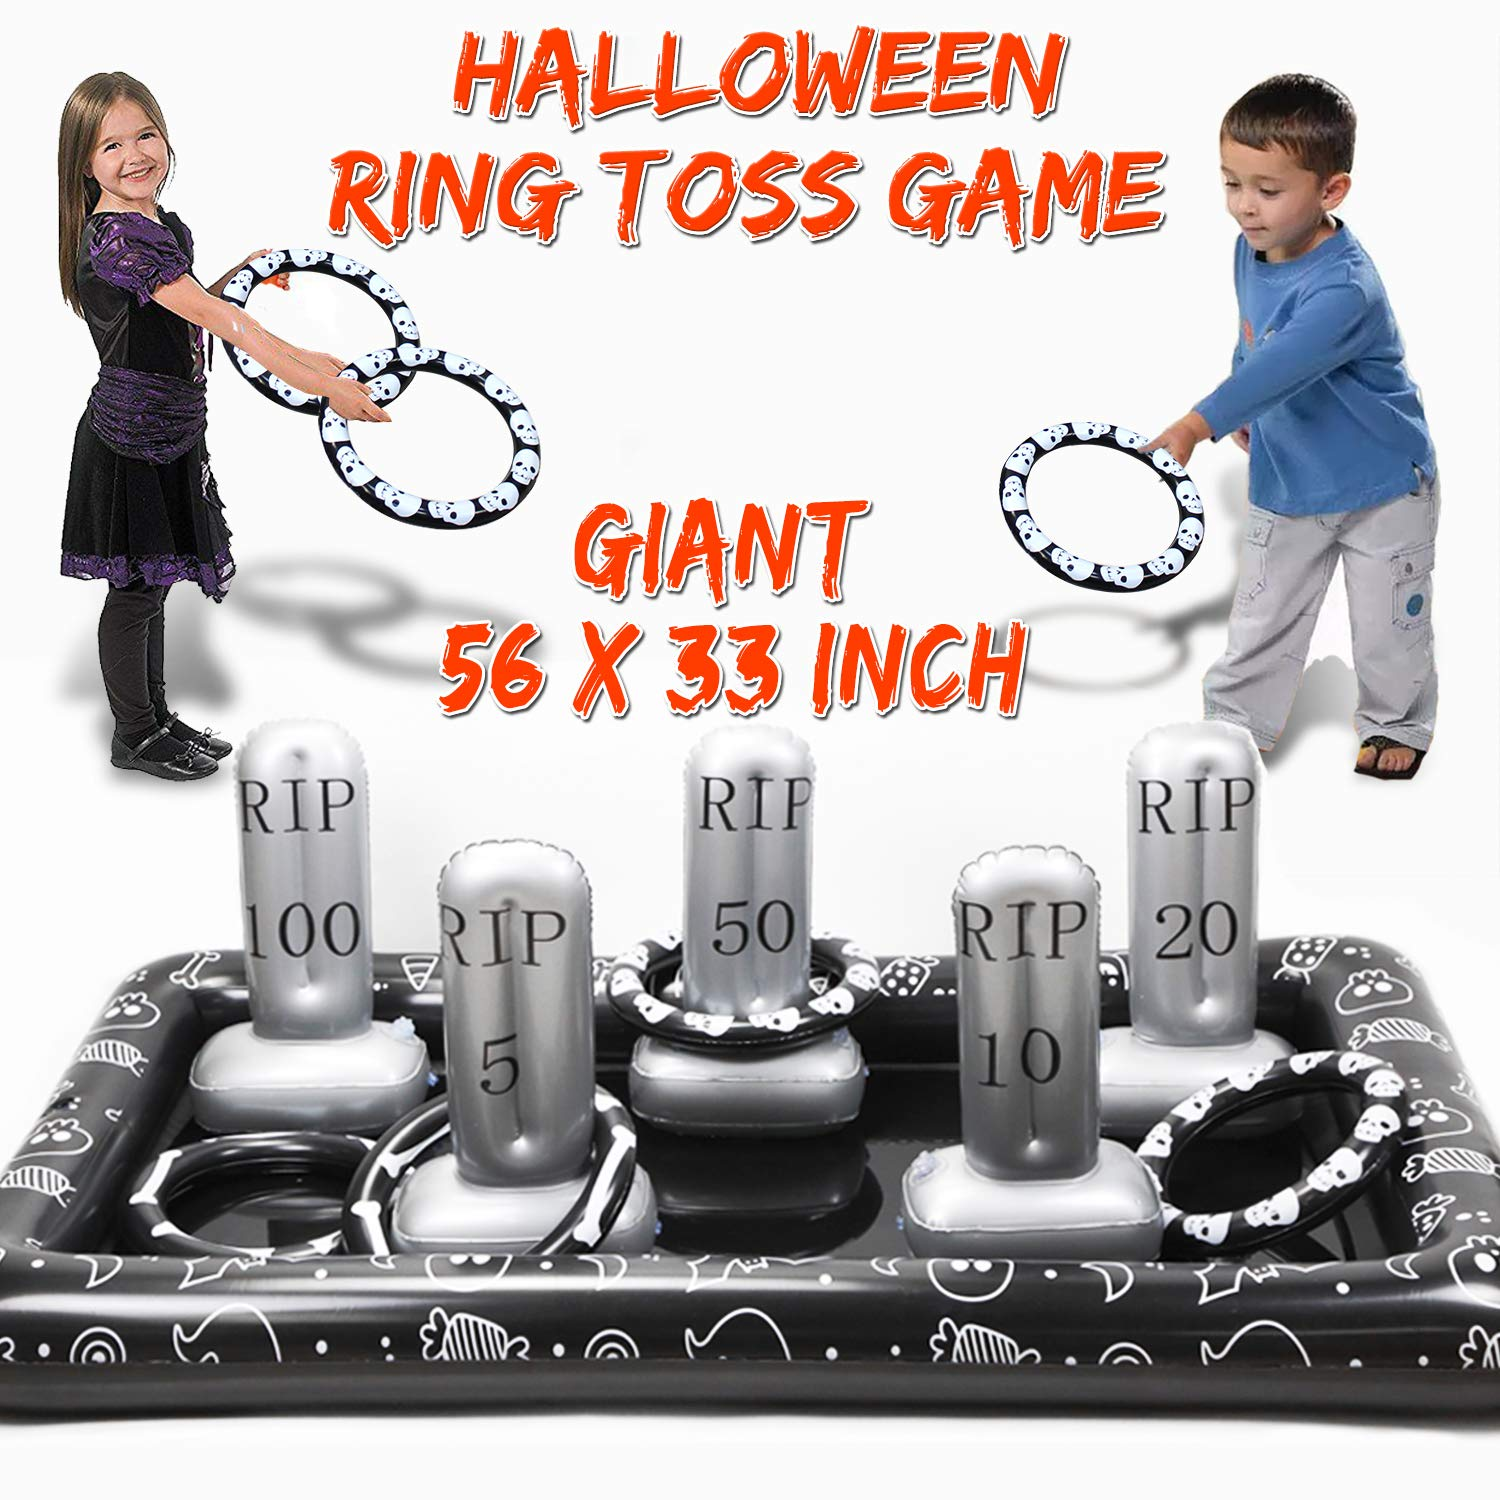 AMENON Inflatable Ring Toss Game, Perfect for Halloween Party Games Fun Indoor Outdoor Activities Game Halloween Party Favors School Carnival Family Game Birthday Holiday Party Toys for Kids Adults by AMENON